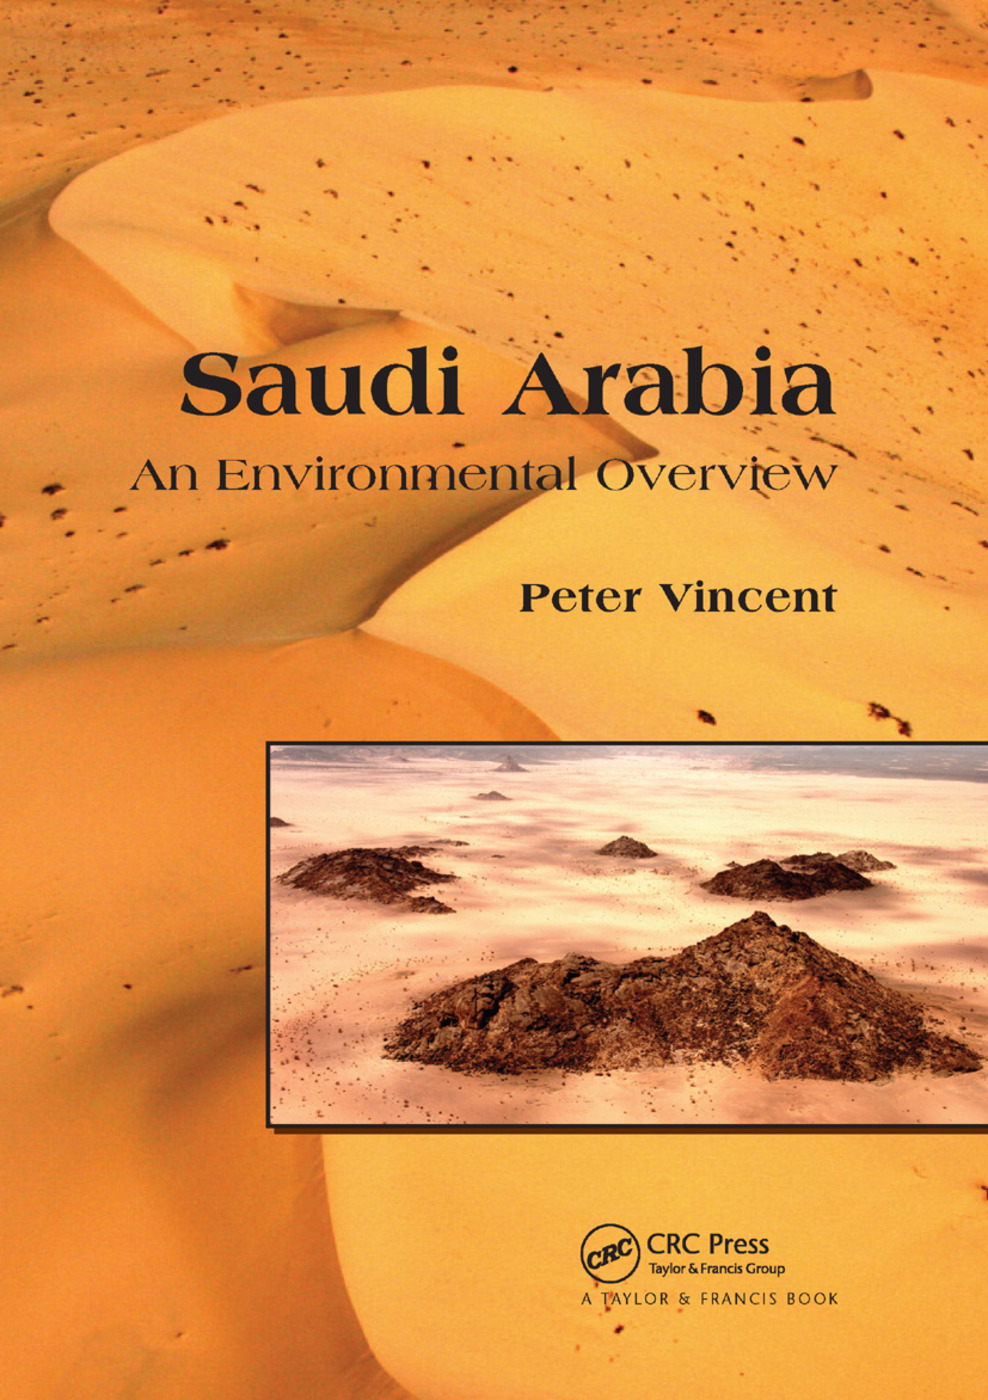 Saudi Arabia: An Environmental Overview book cover